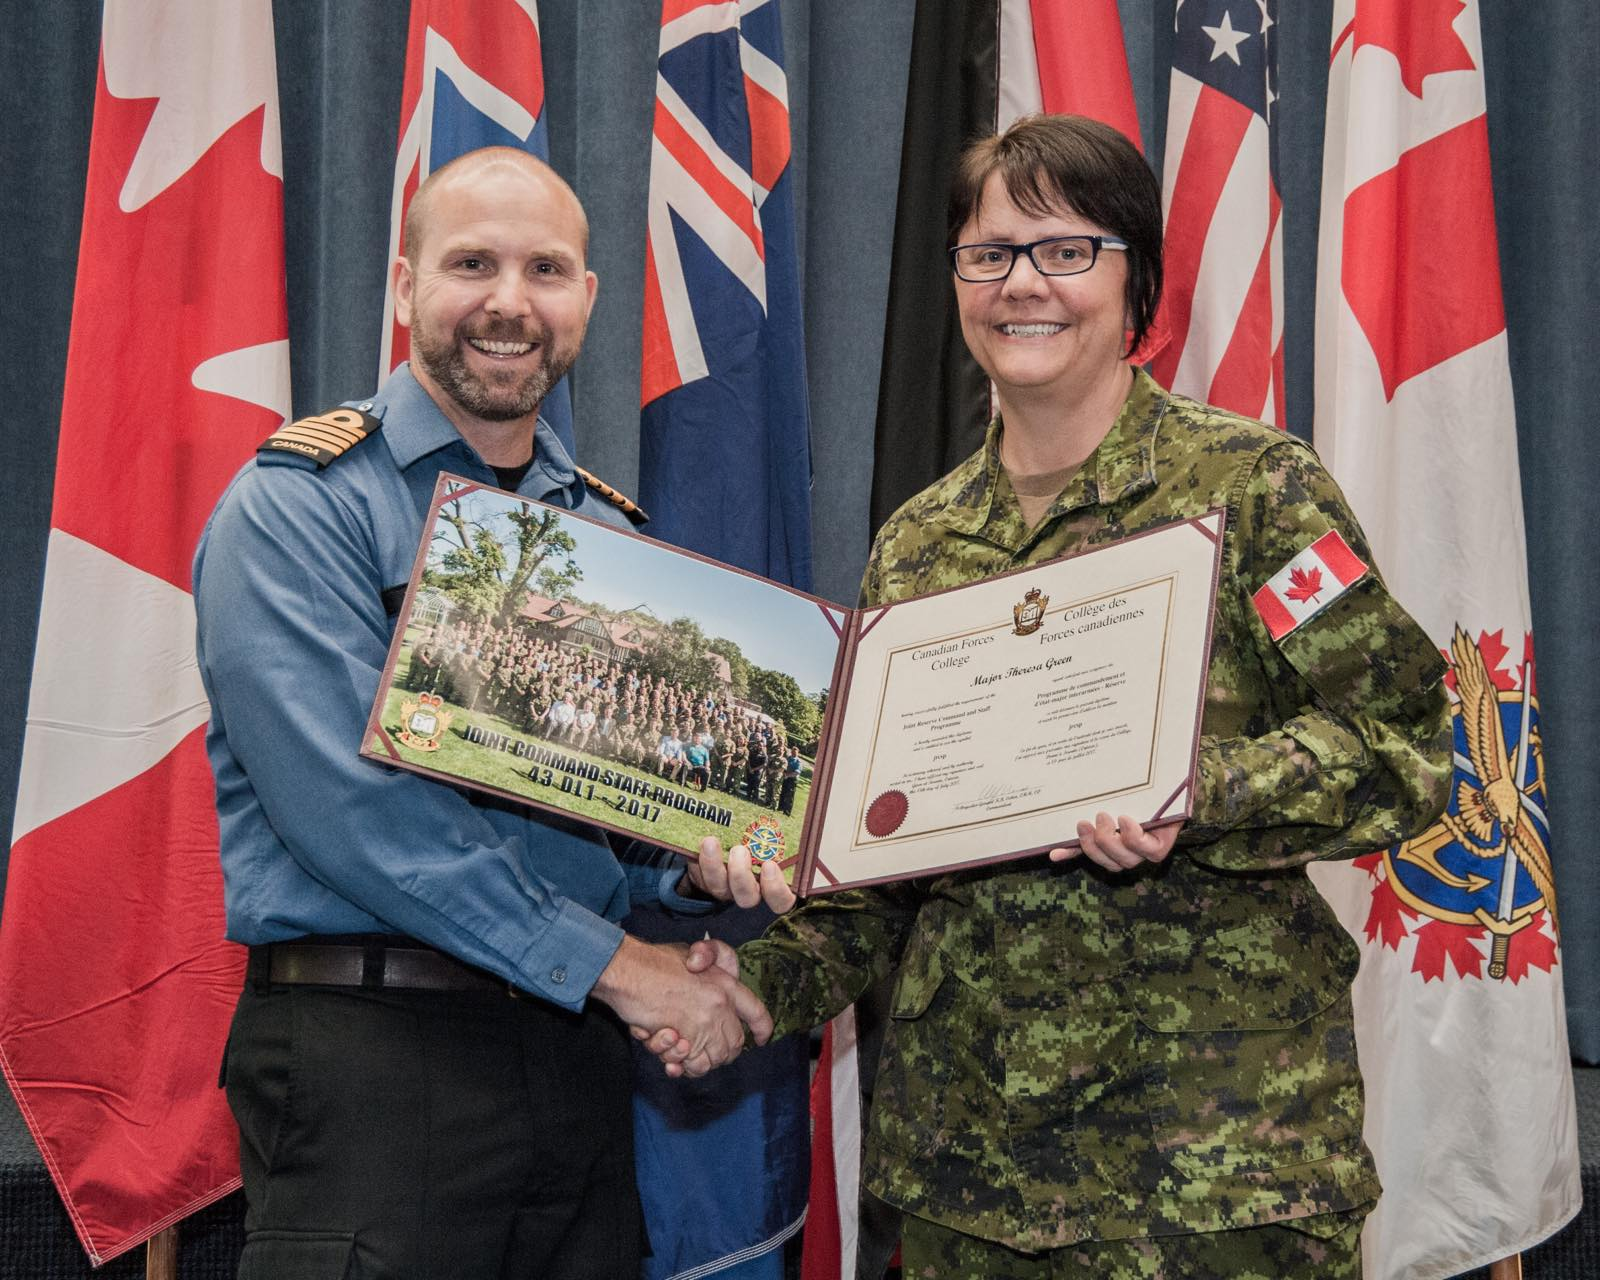 JCSP 43 DL1 Graduation Ceremony - 15 July 2017 - Photo 311